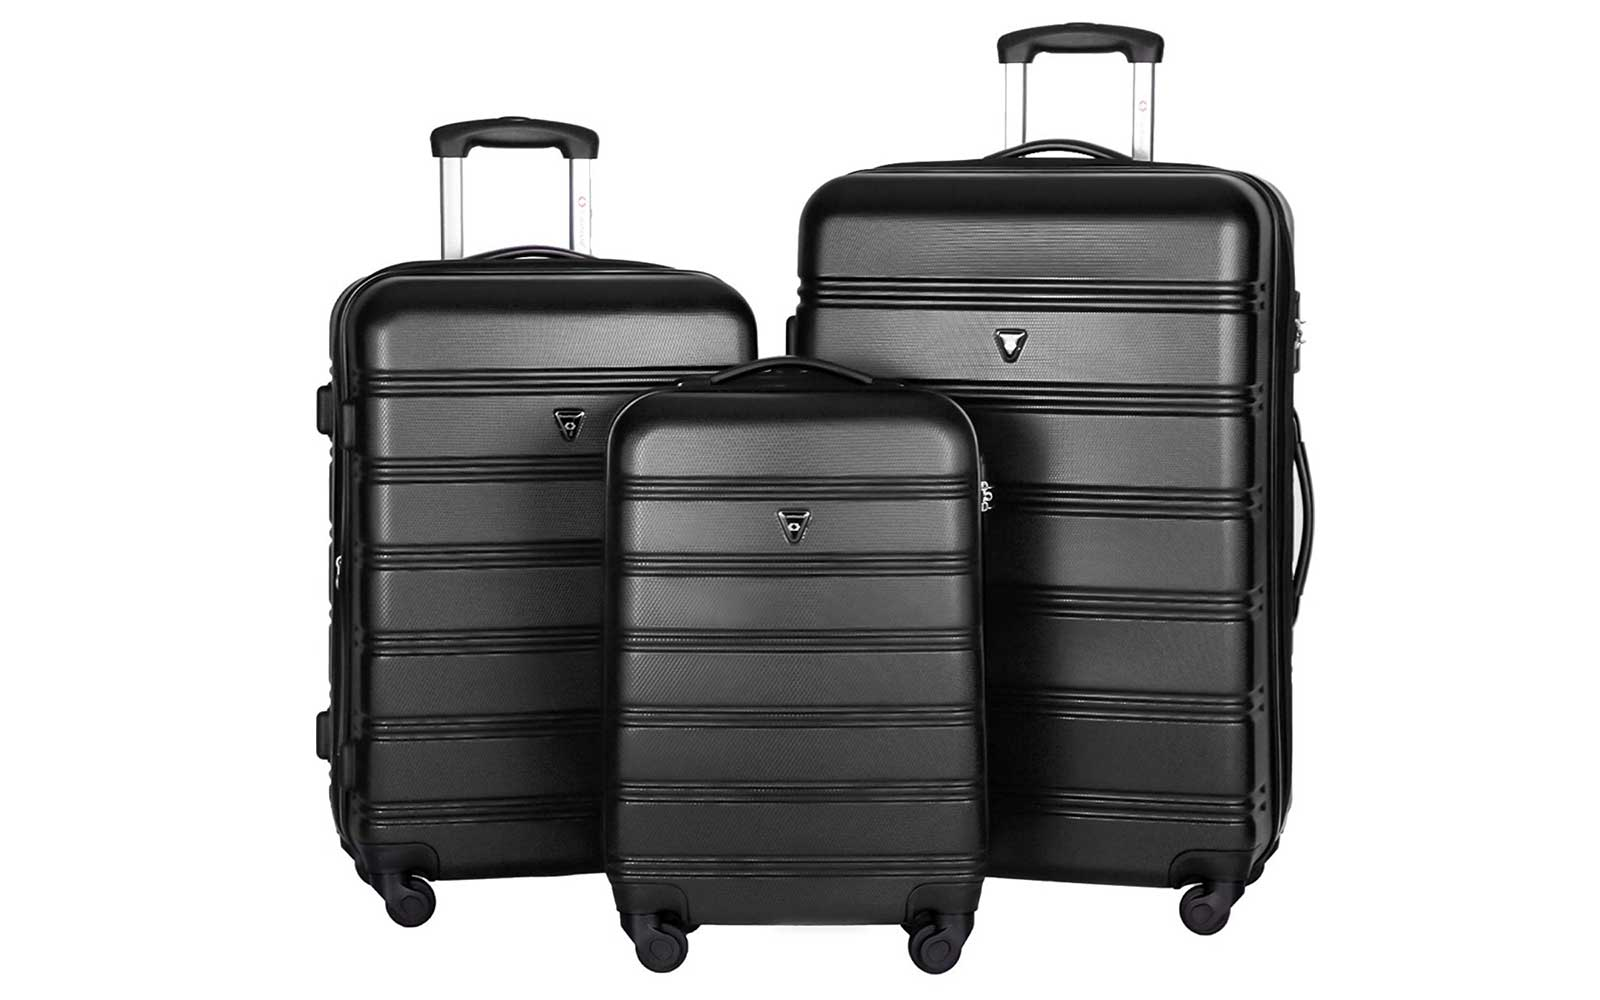 Merax Travelhouse Luggage Set 3 Piece Luggage